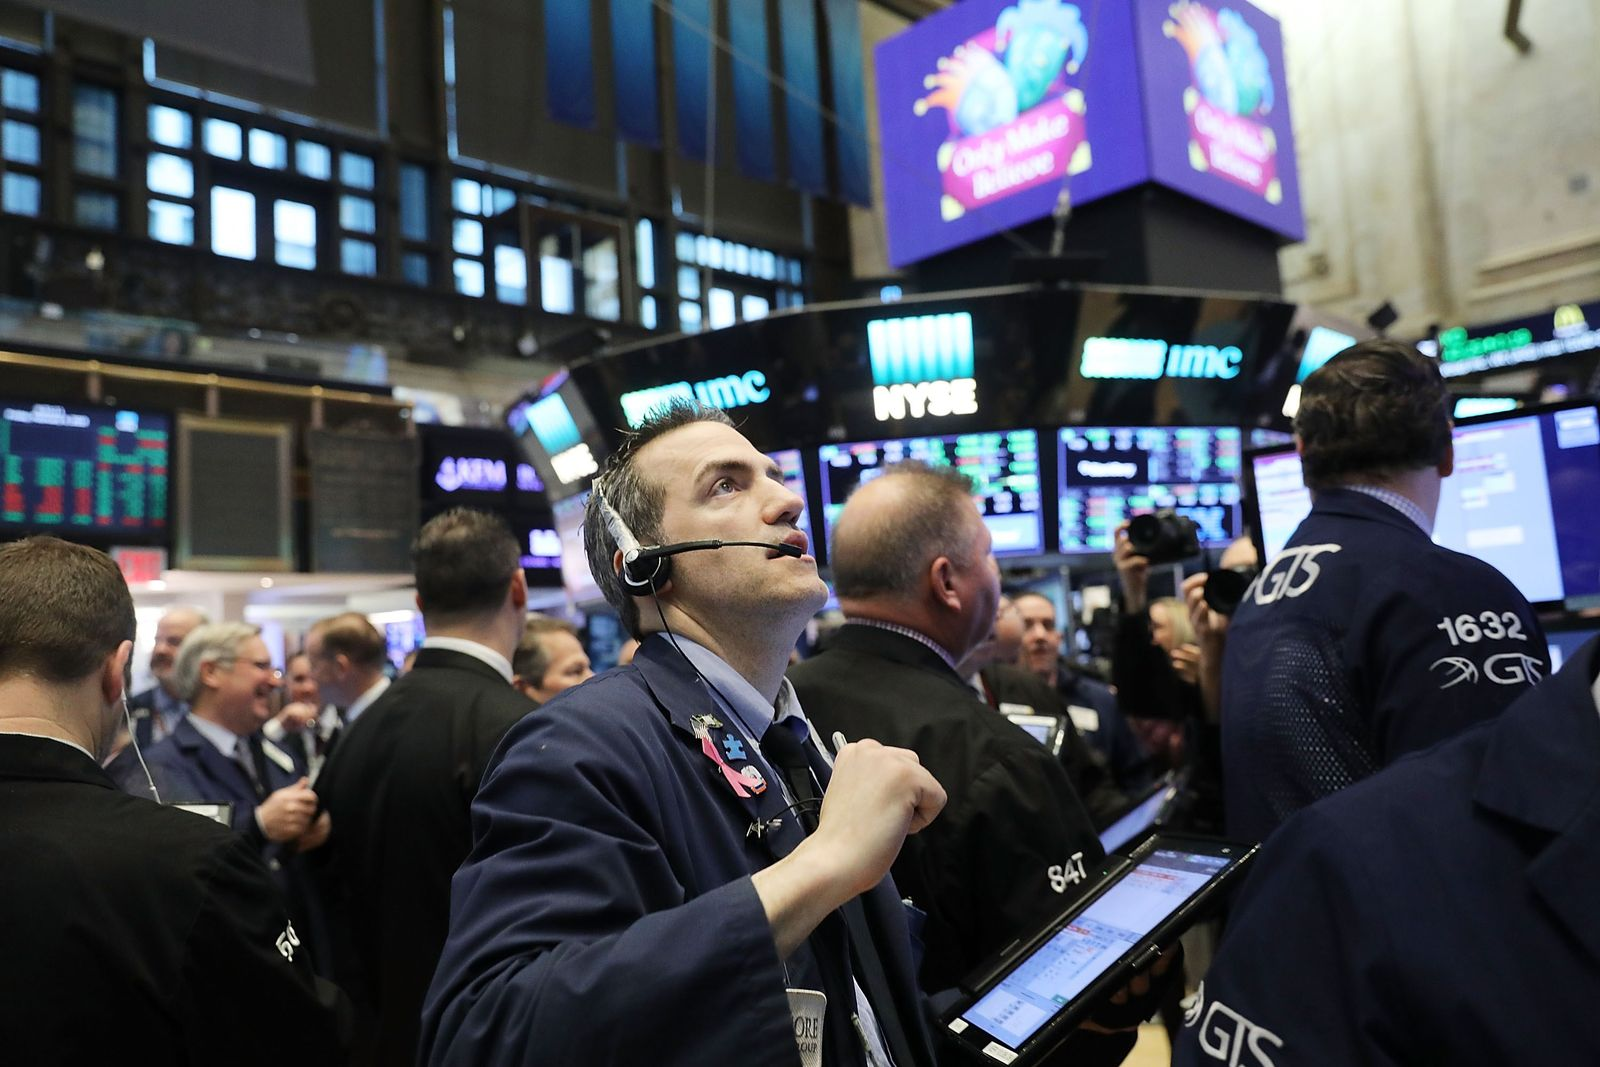 US-MARKETS-OPEN-FOR-TRADING-ONE-DAY-AFTER-DOW-PLUNGES-OVER-1000-